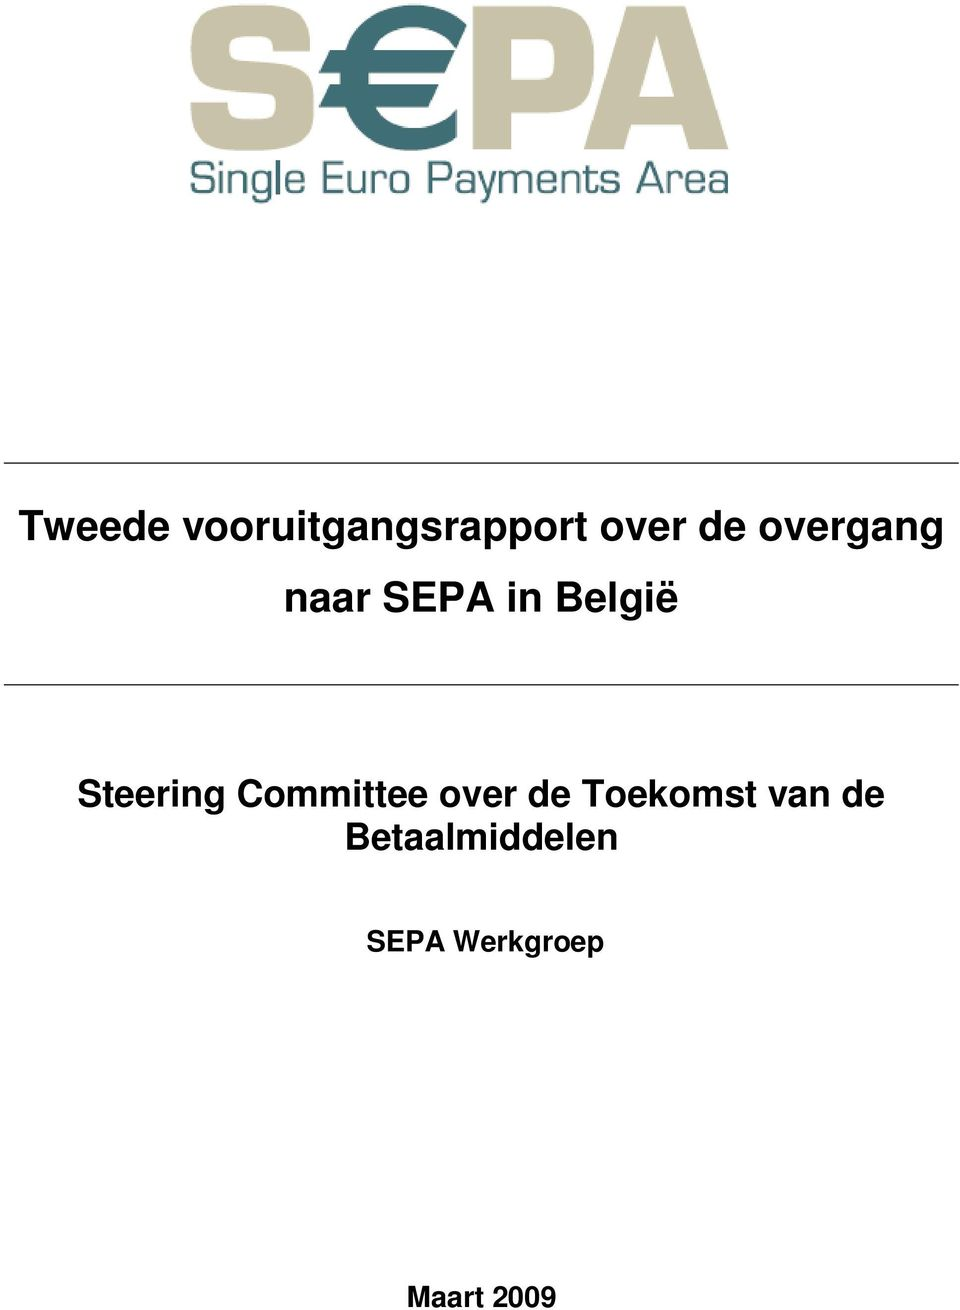 Steering Committee over de Toekomst